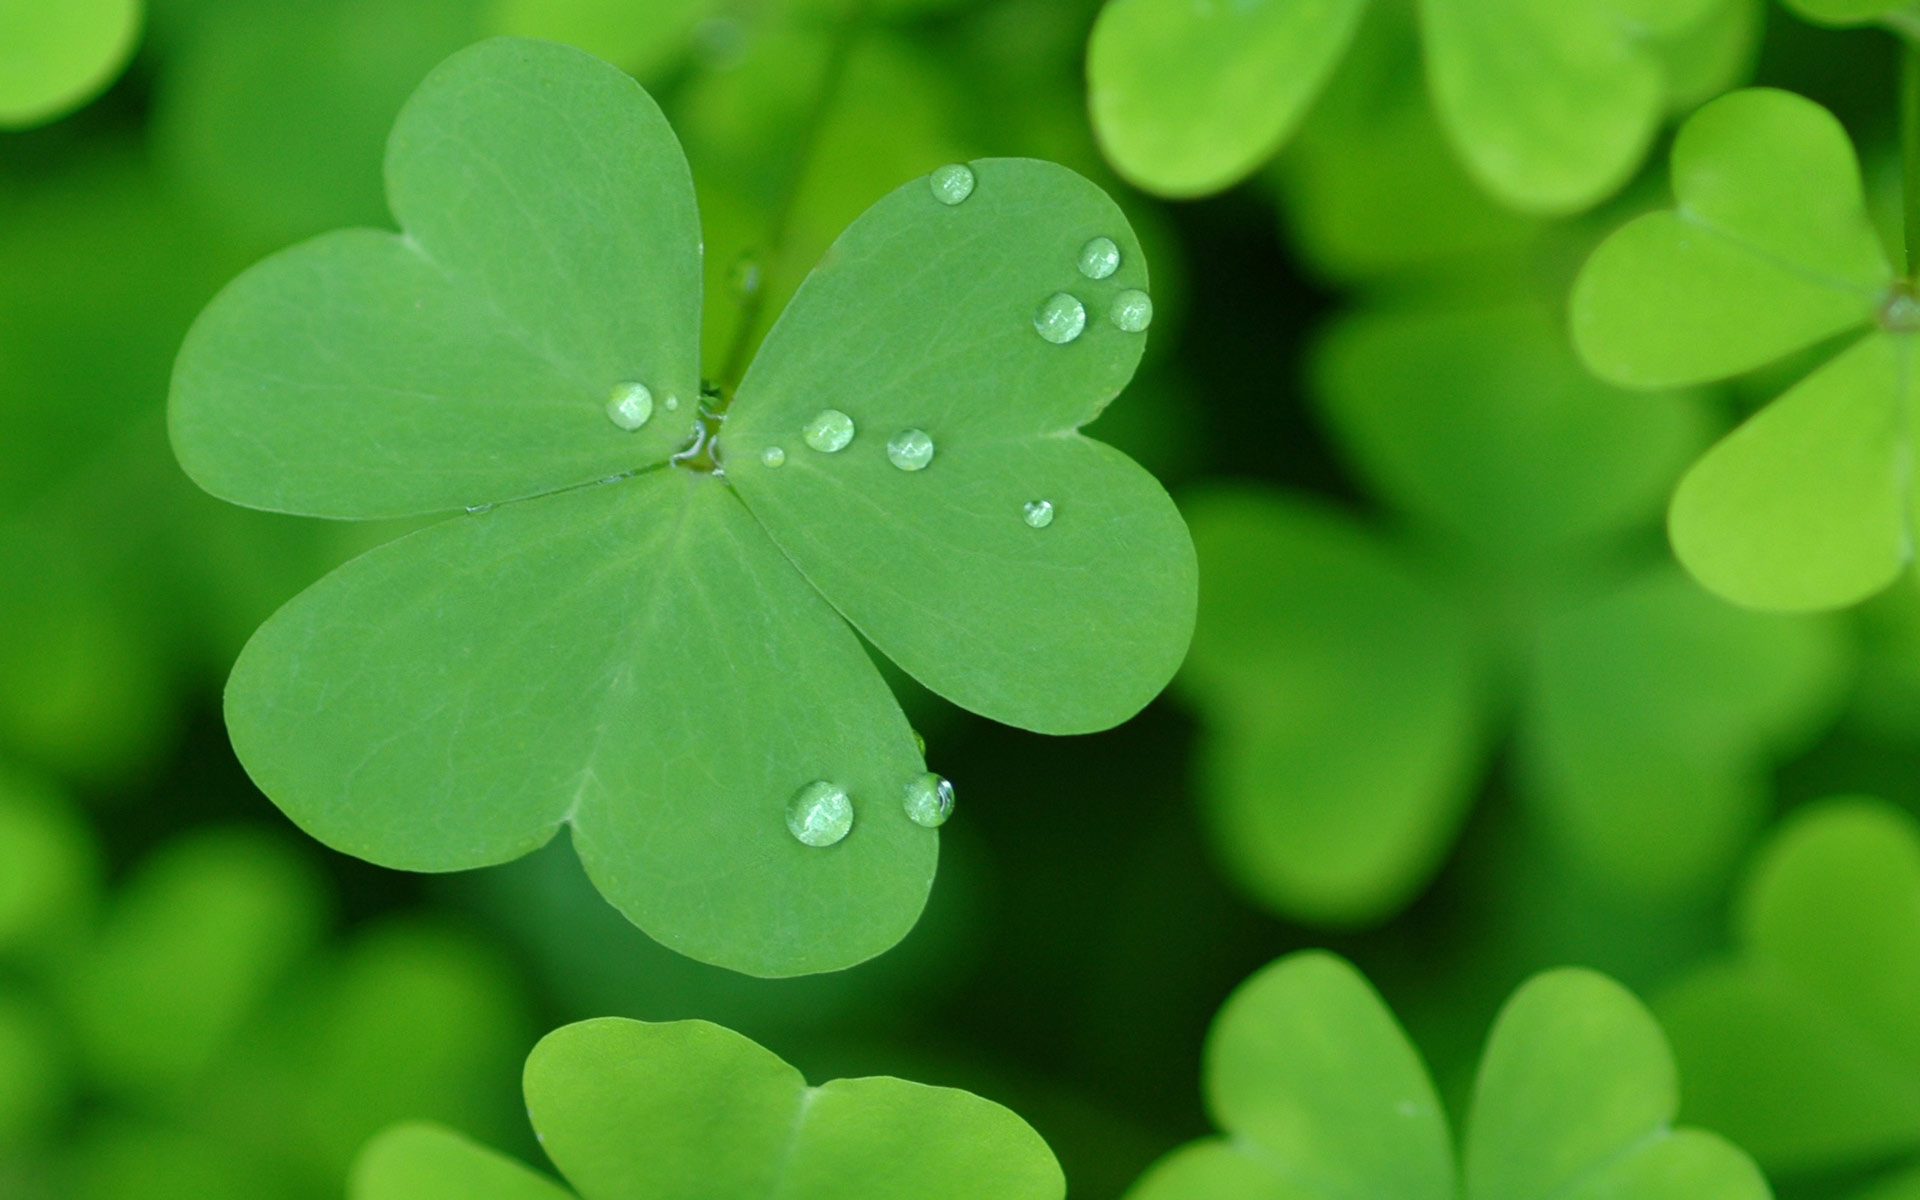 Happy St Patrick's Day 2014 wallpaper - 1294428